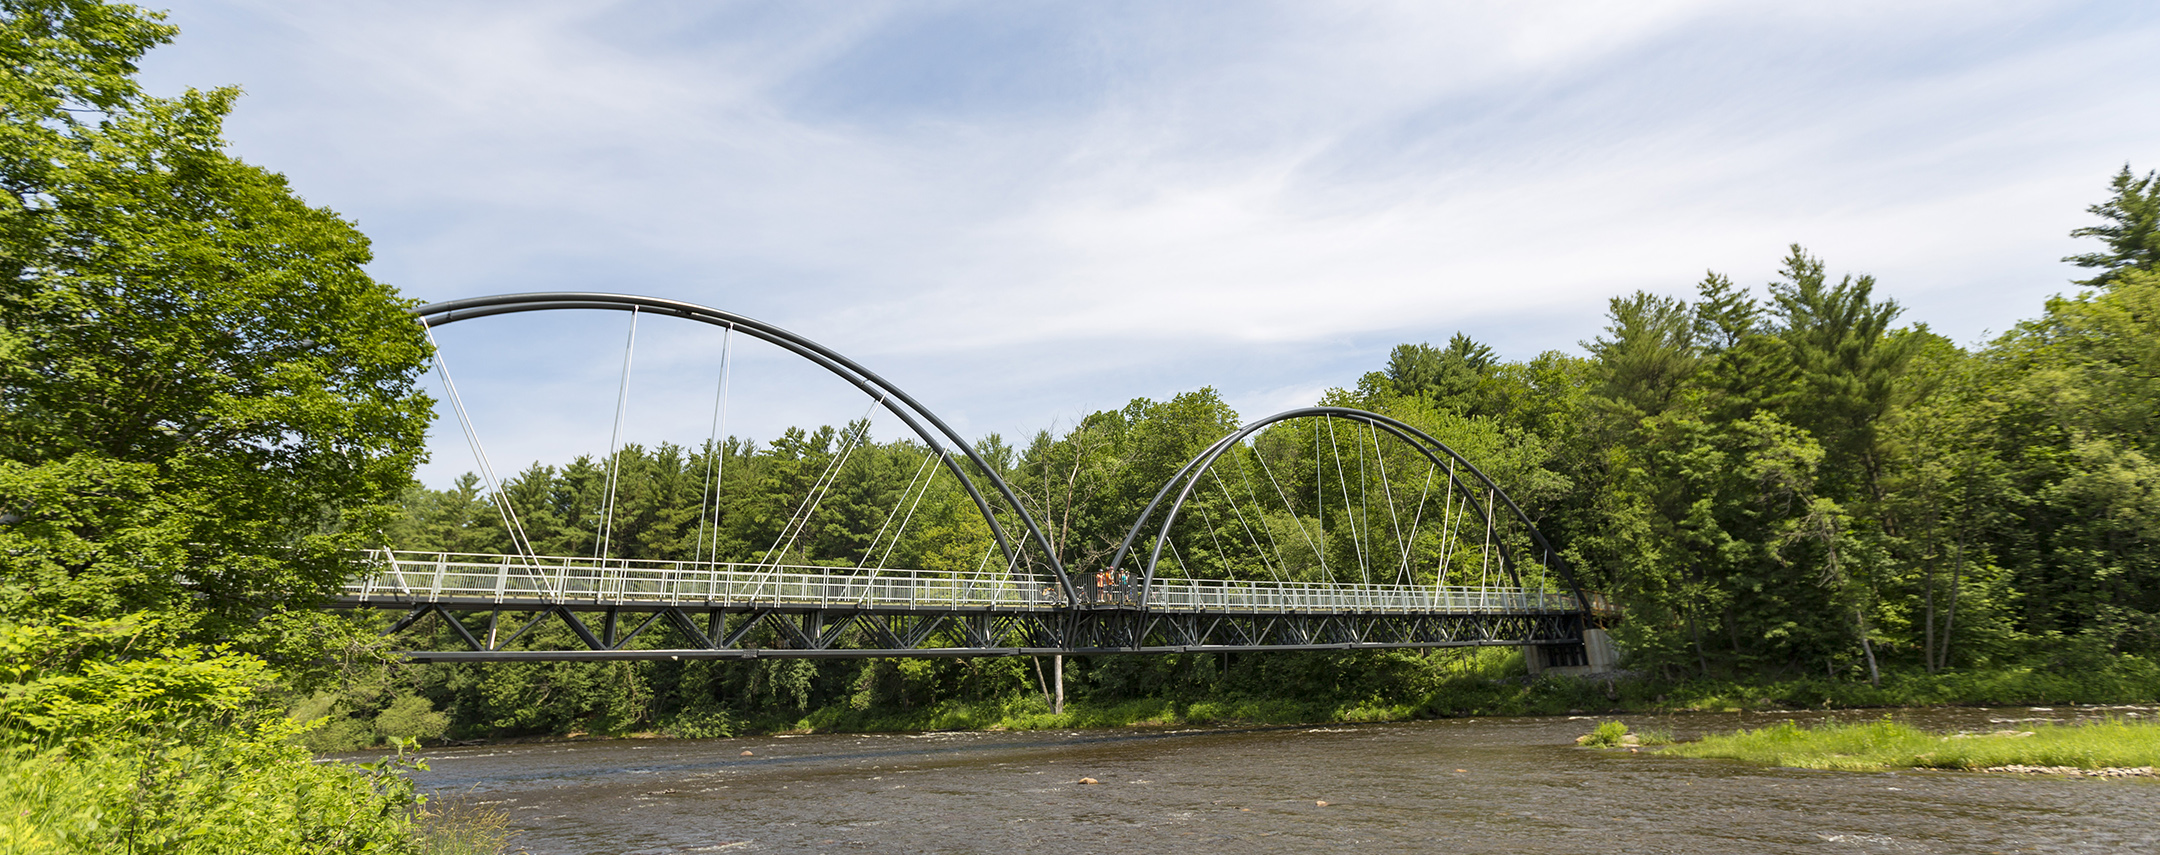 Île Vessot bridge